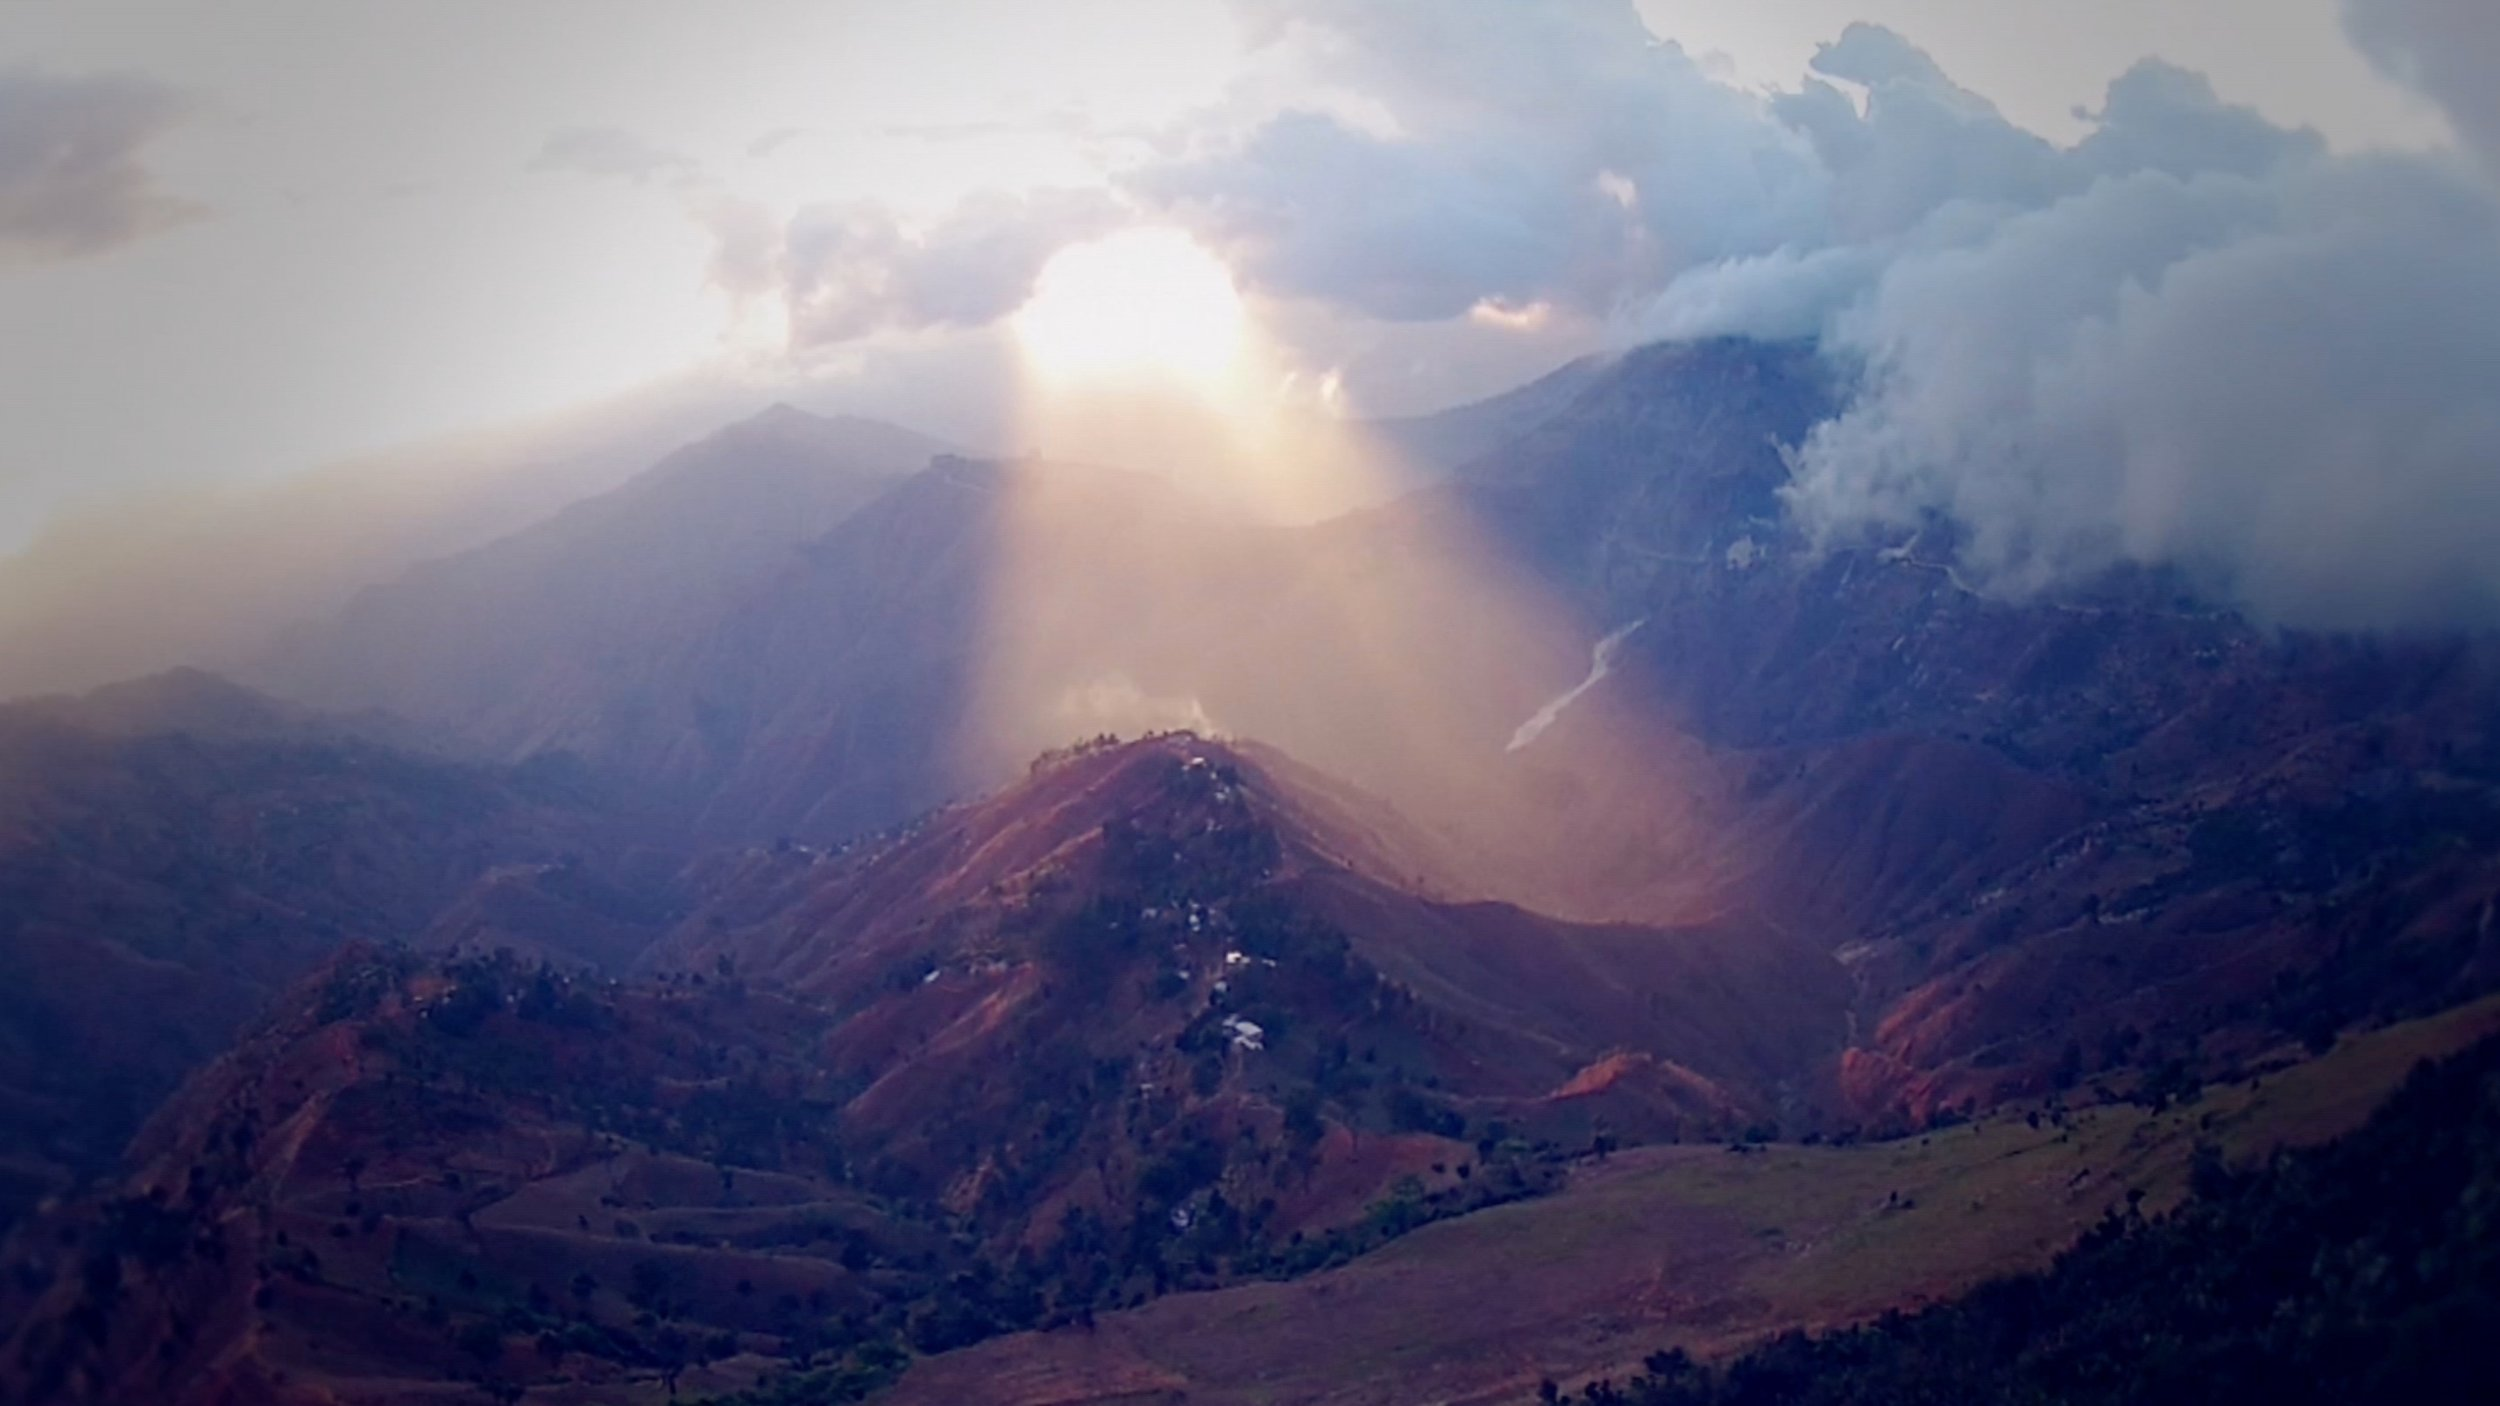 sun breaking through clouds onto hills like beam of light from Heaven